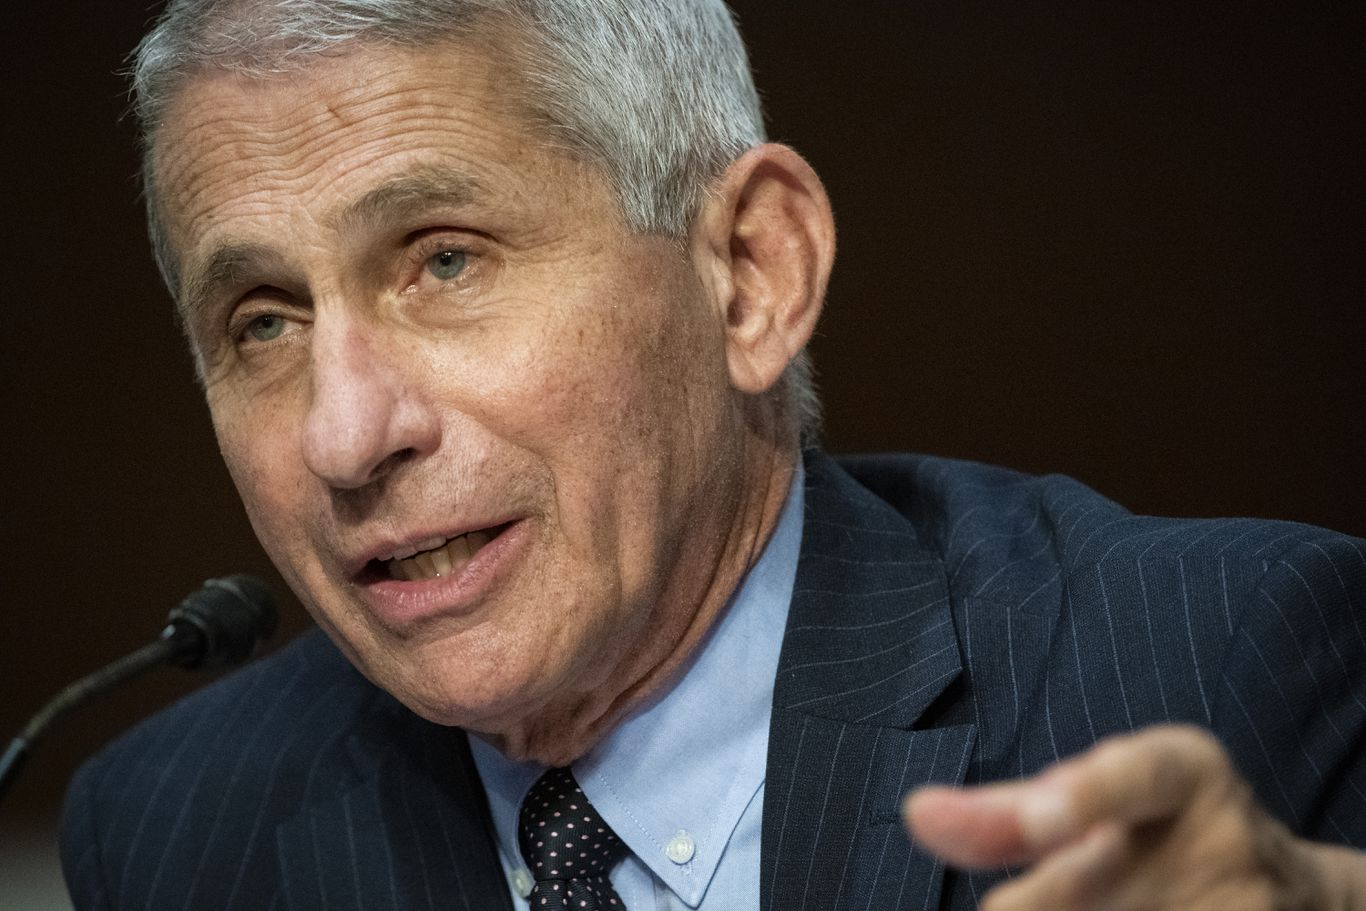 Fauci and other experts give advice on day-to-day life in a pandemic